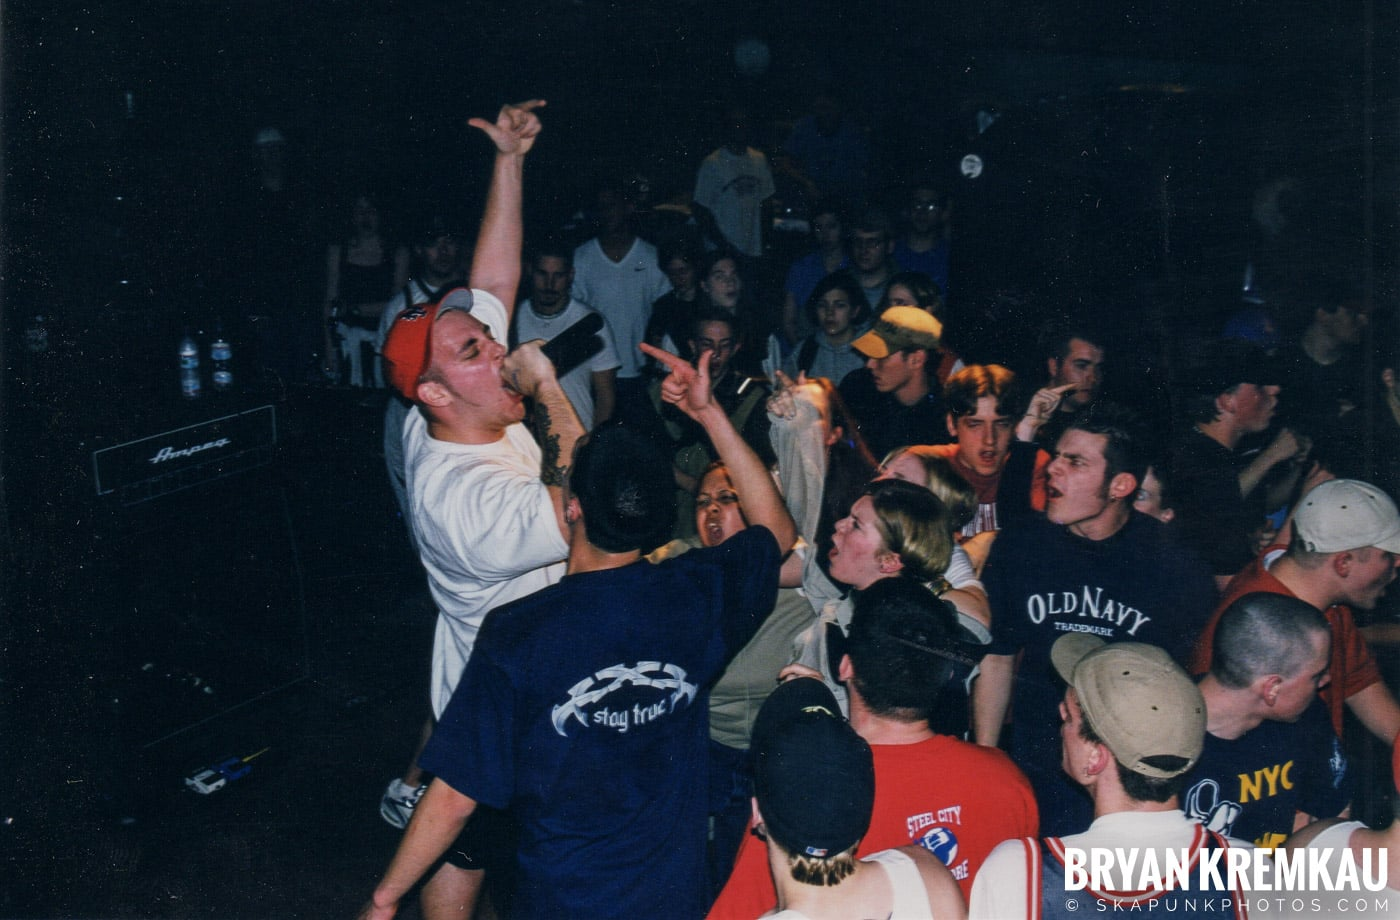 E-Town Concrete @ Sea Sea's, Moosic, PA - 4.8.99 (4)